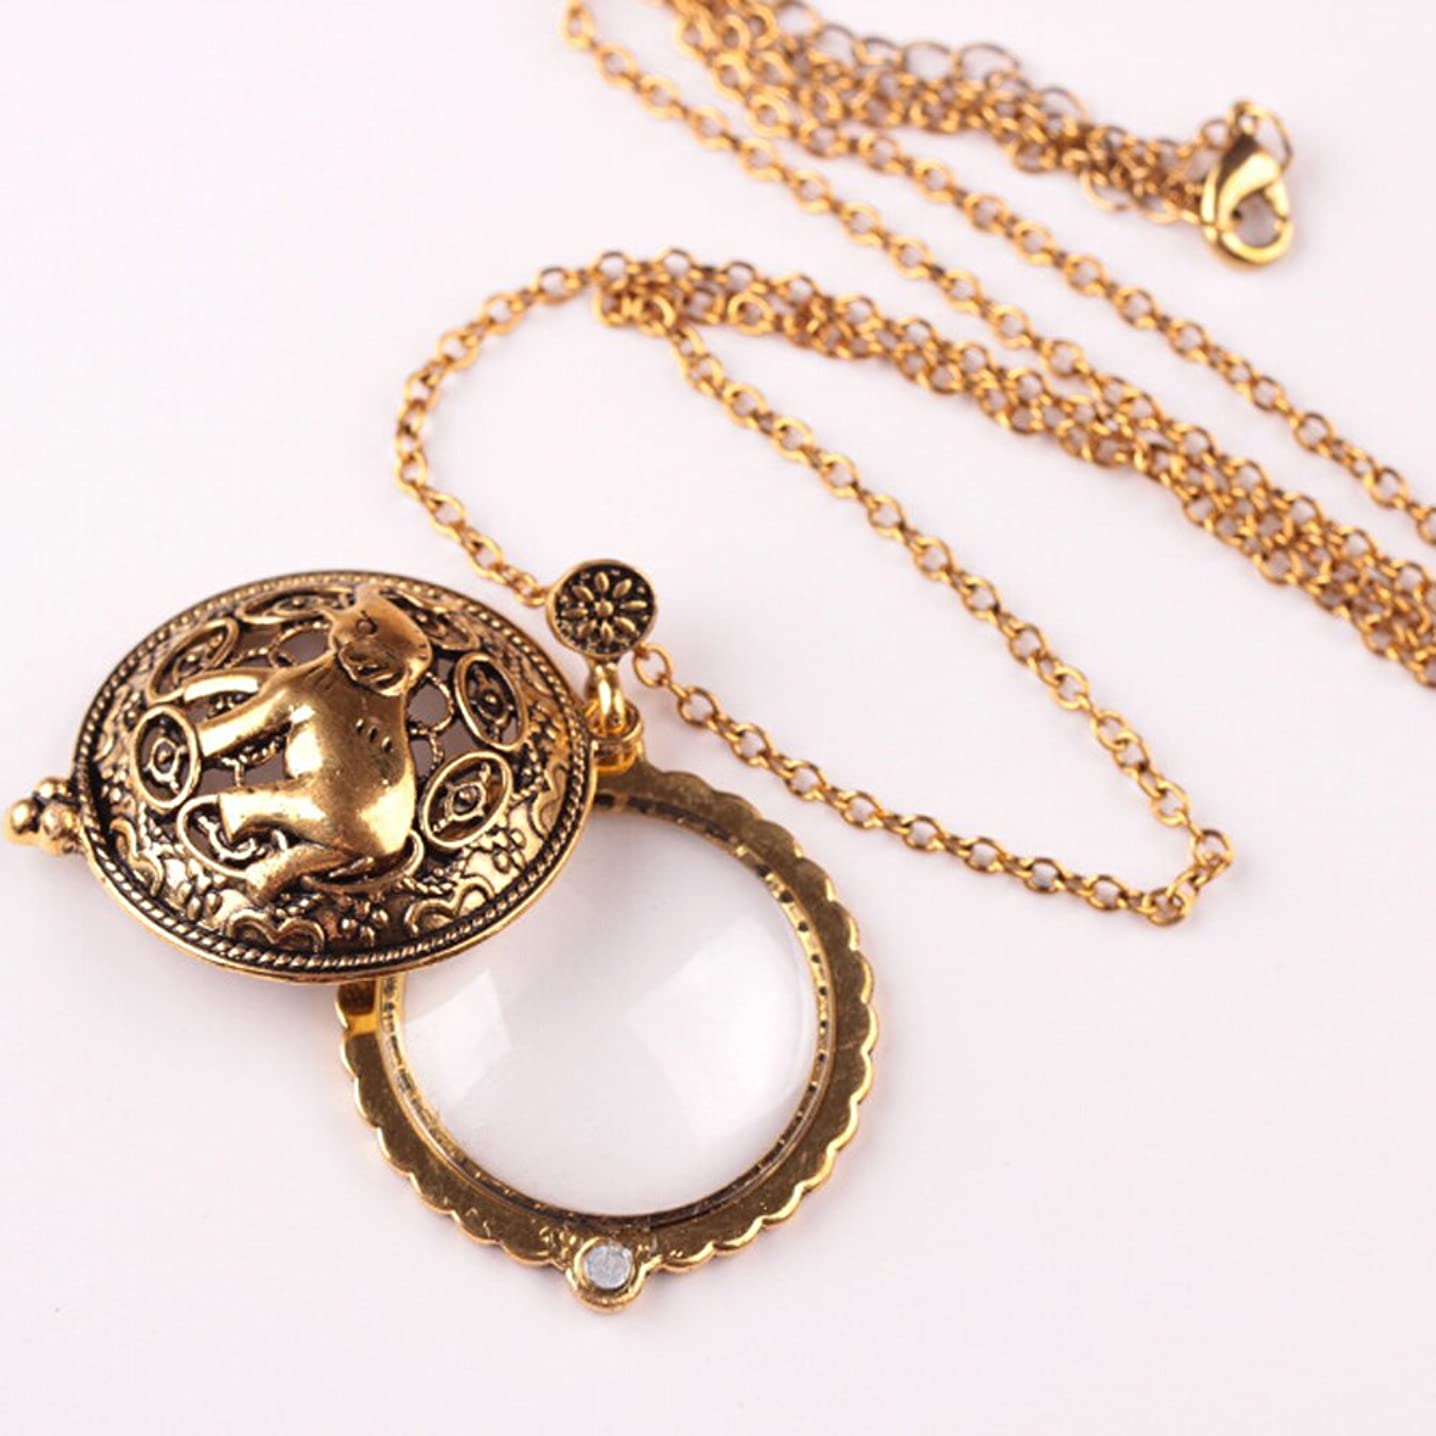 WESEAZON Handheld Magnifier Classic Magnifier Glass Convex Lens Old Man Reading Glasses 2X Lady Necklace Magnifier Gold Color Pendant 38mm Wide Necklace 600mm